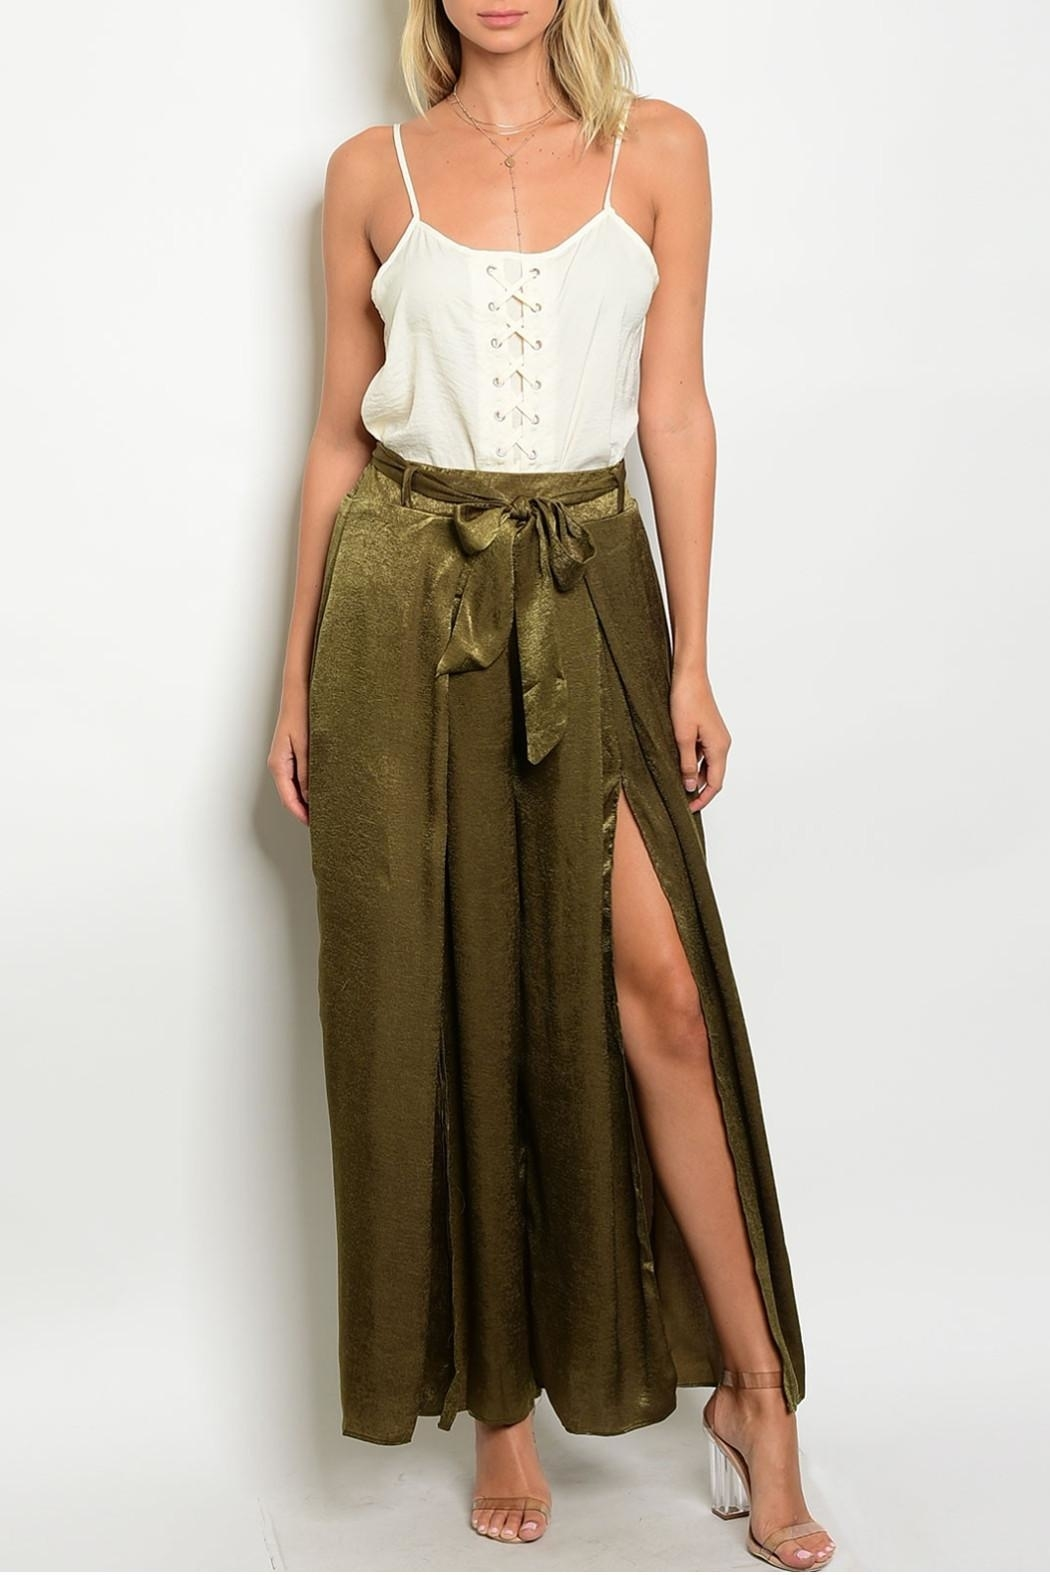 in the Beginning Olive Satin Palazzo Pants - Front Cropped Image